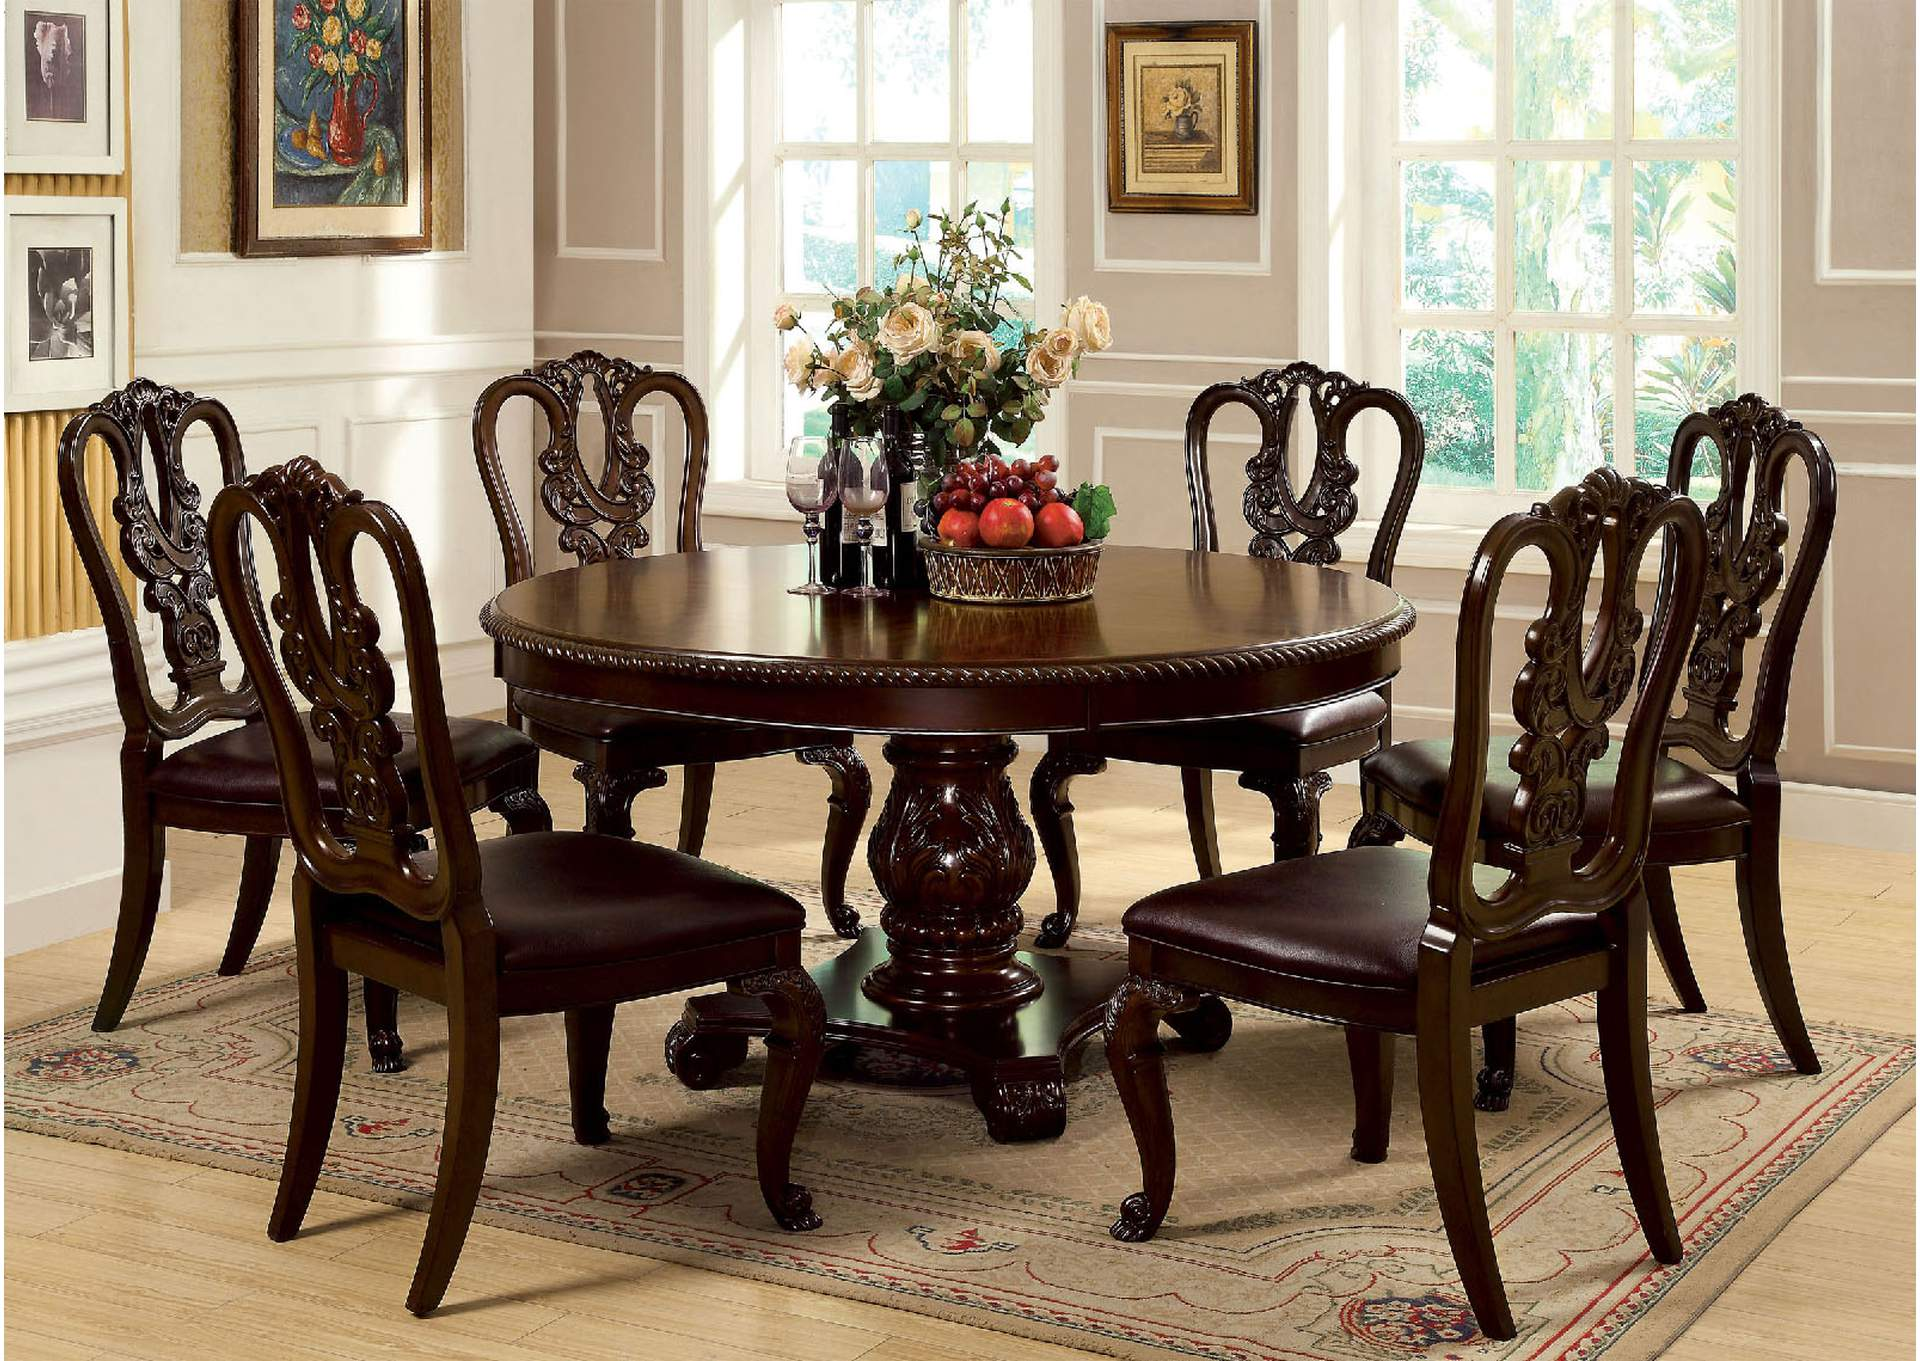 Noguez Home Furniture Bellagio Round Dining Table w/6 Wooden ...